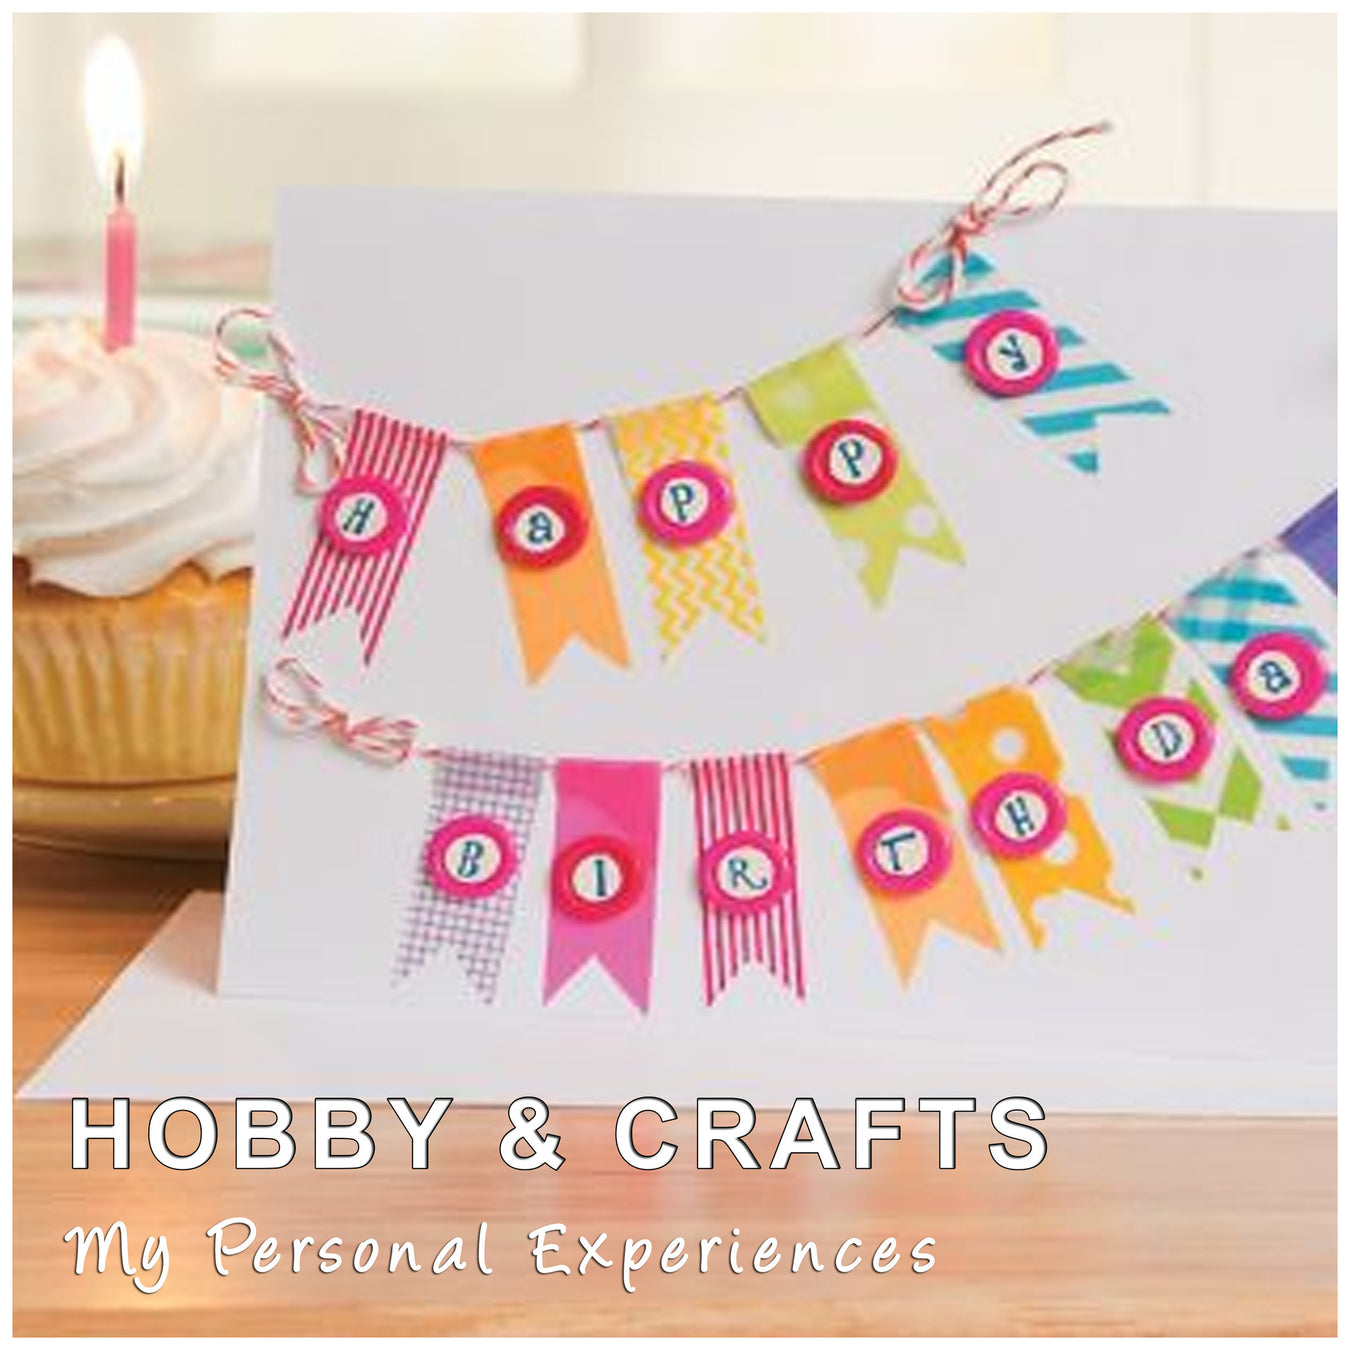 Hobby & Crafts